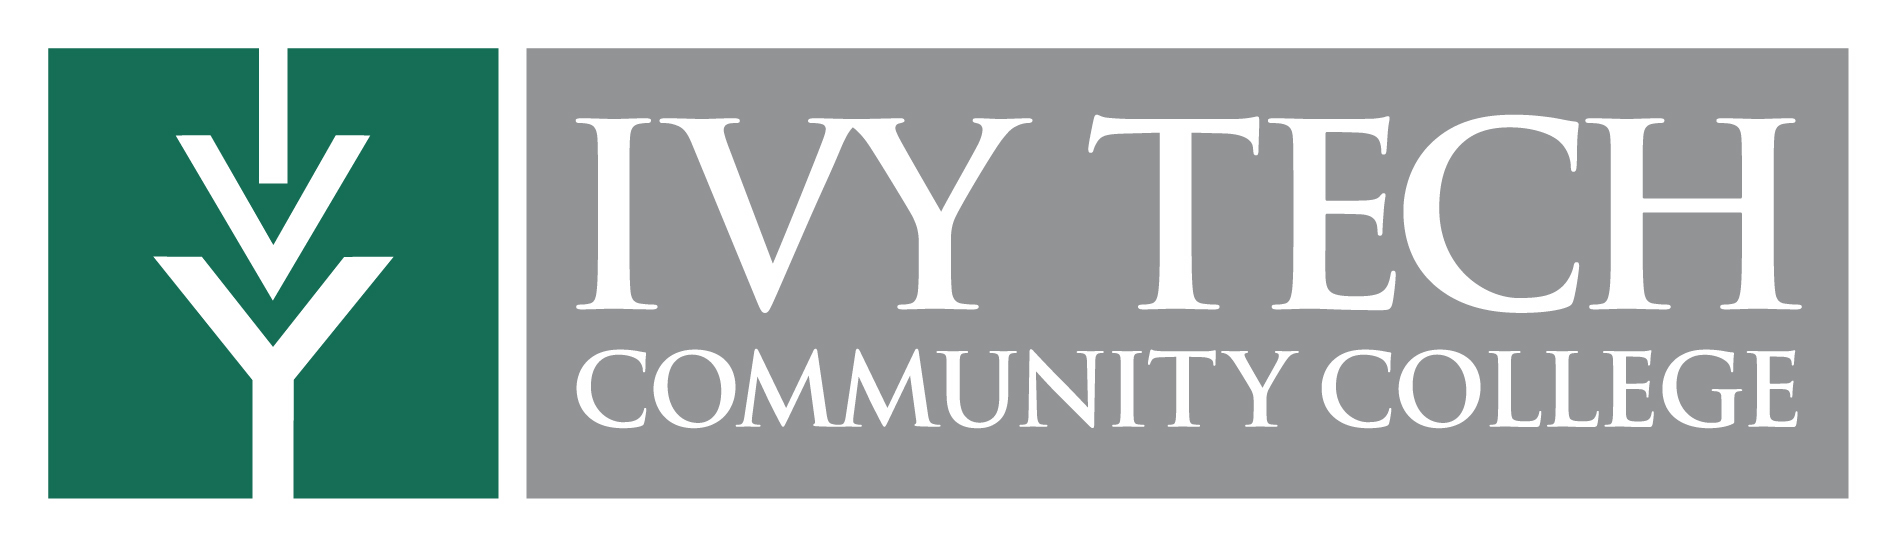 Ivytech Community College Logo